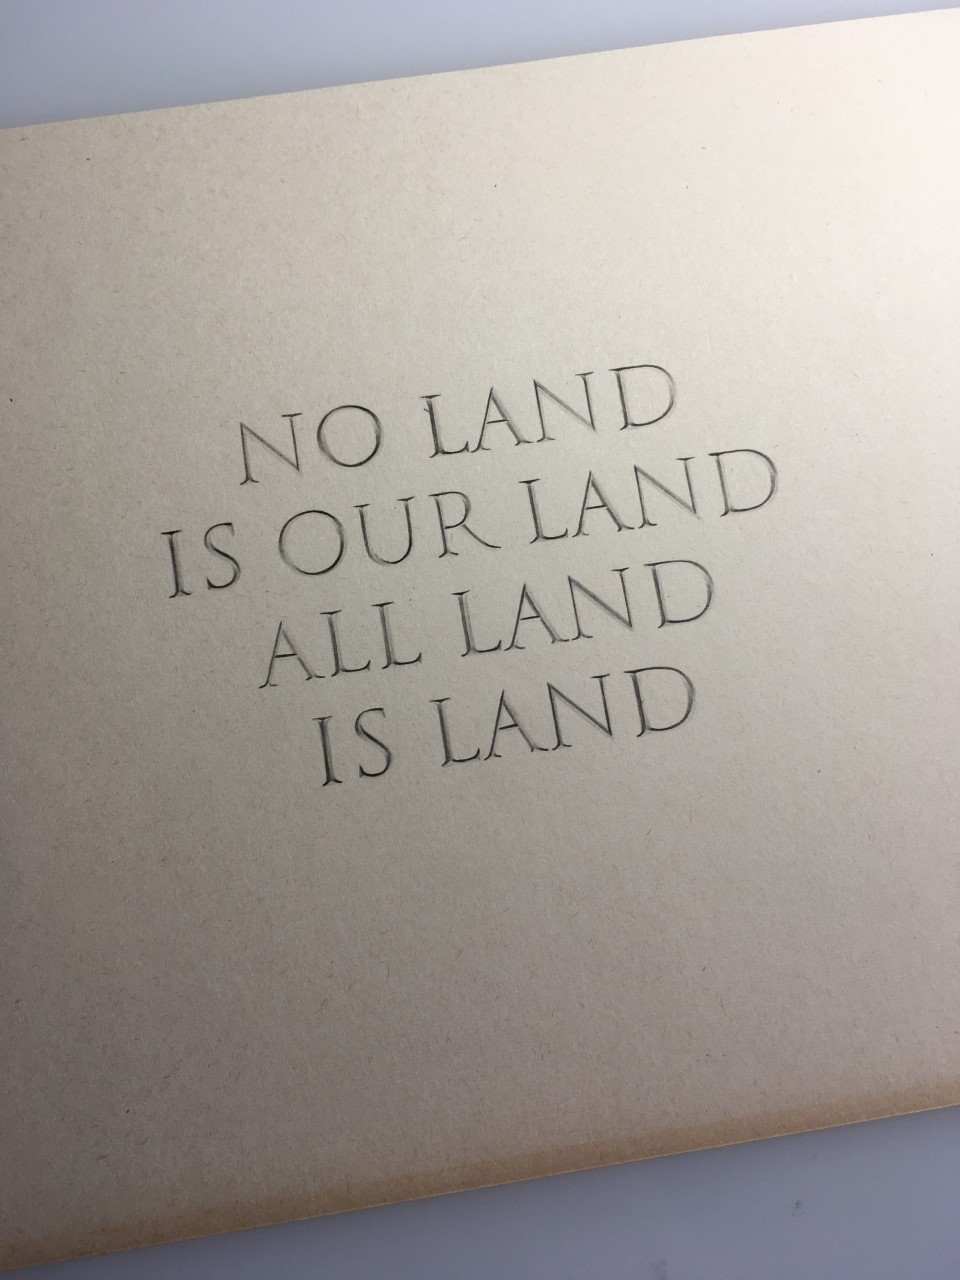 Lisa Wilkens, No Land Is Our Land All Land Is Land (2019). Chinese ink on paper